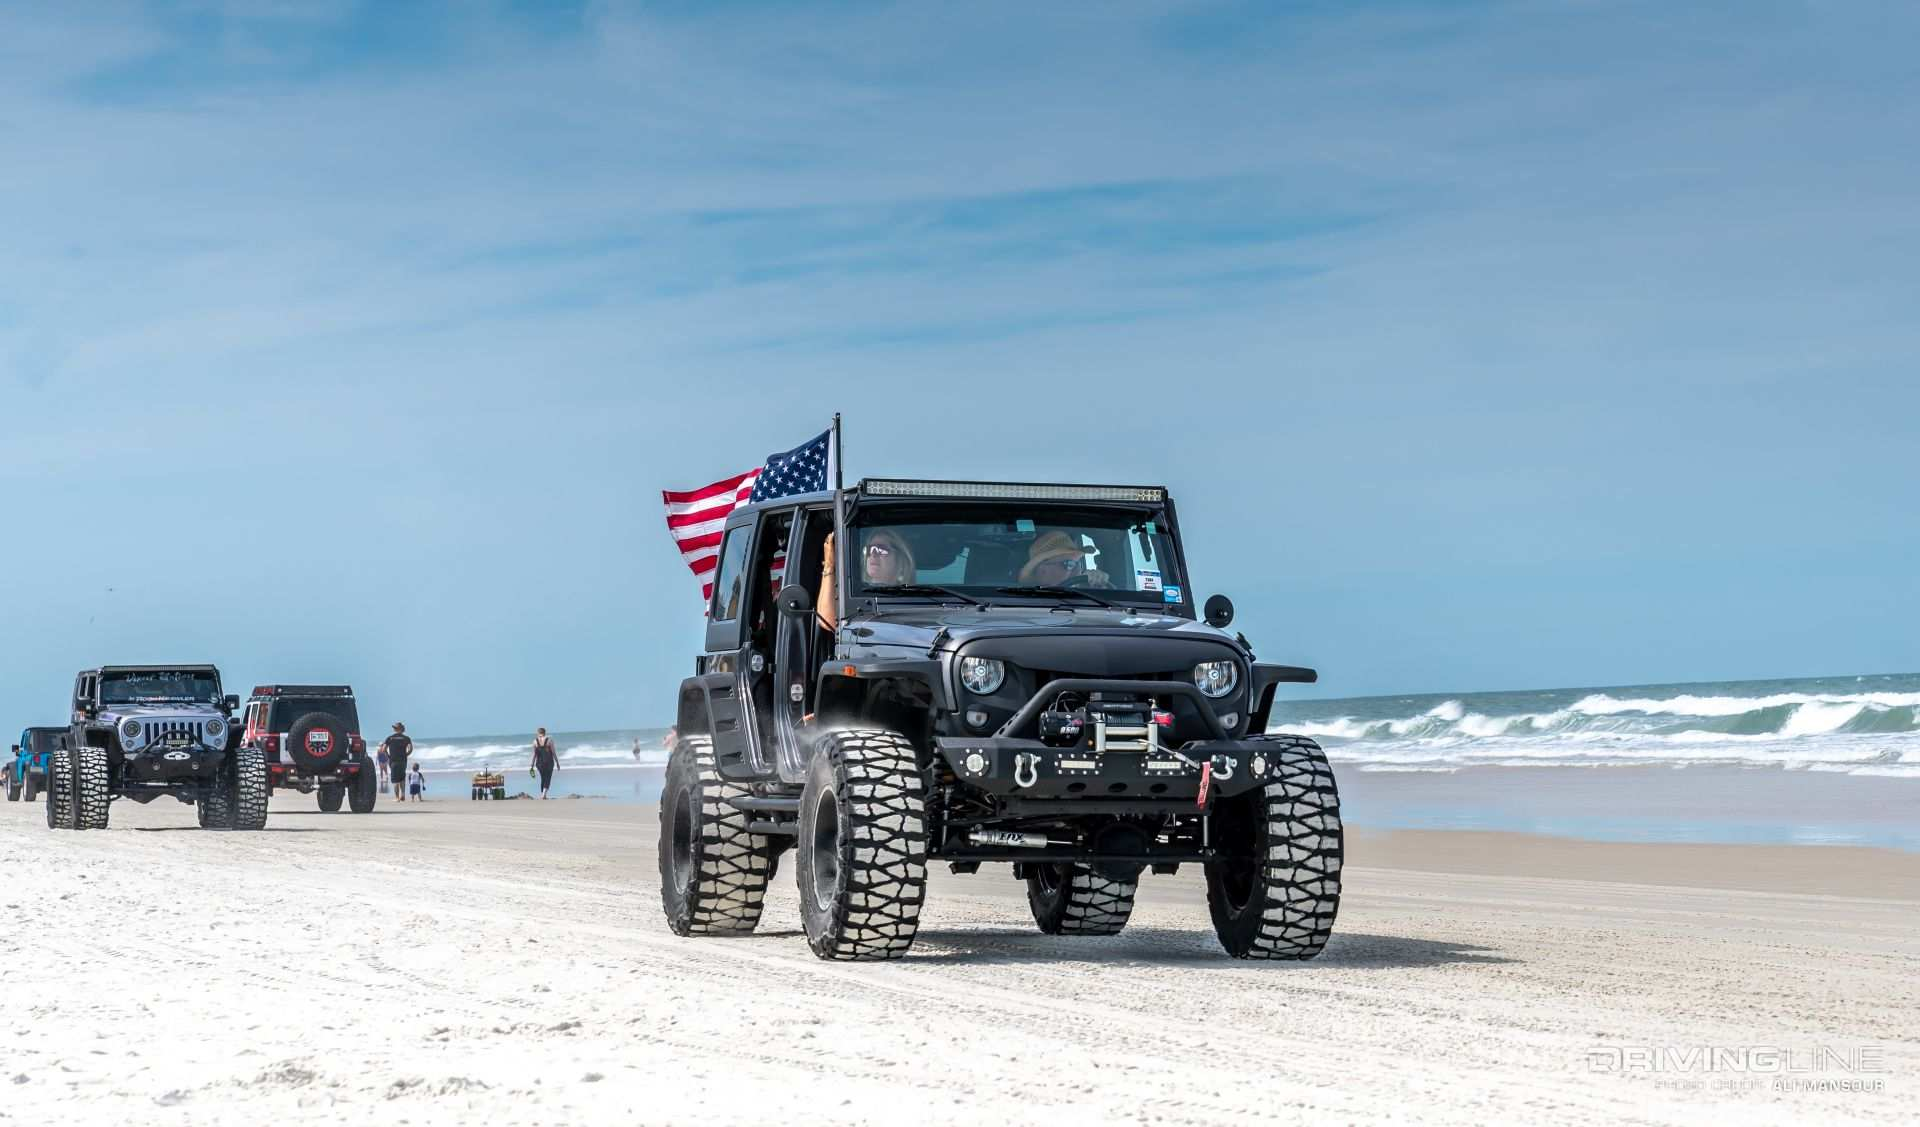 57 Great Jeep Beach Daytona 2020 Concept by Jeep Beach Daytona 2020